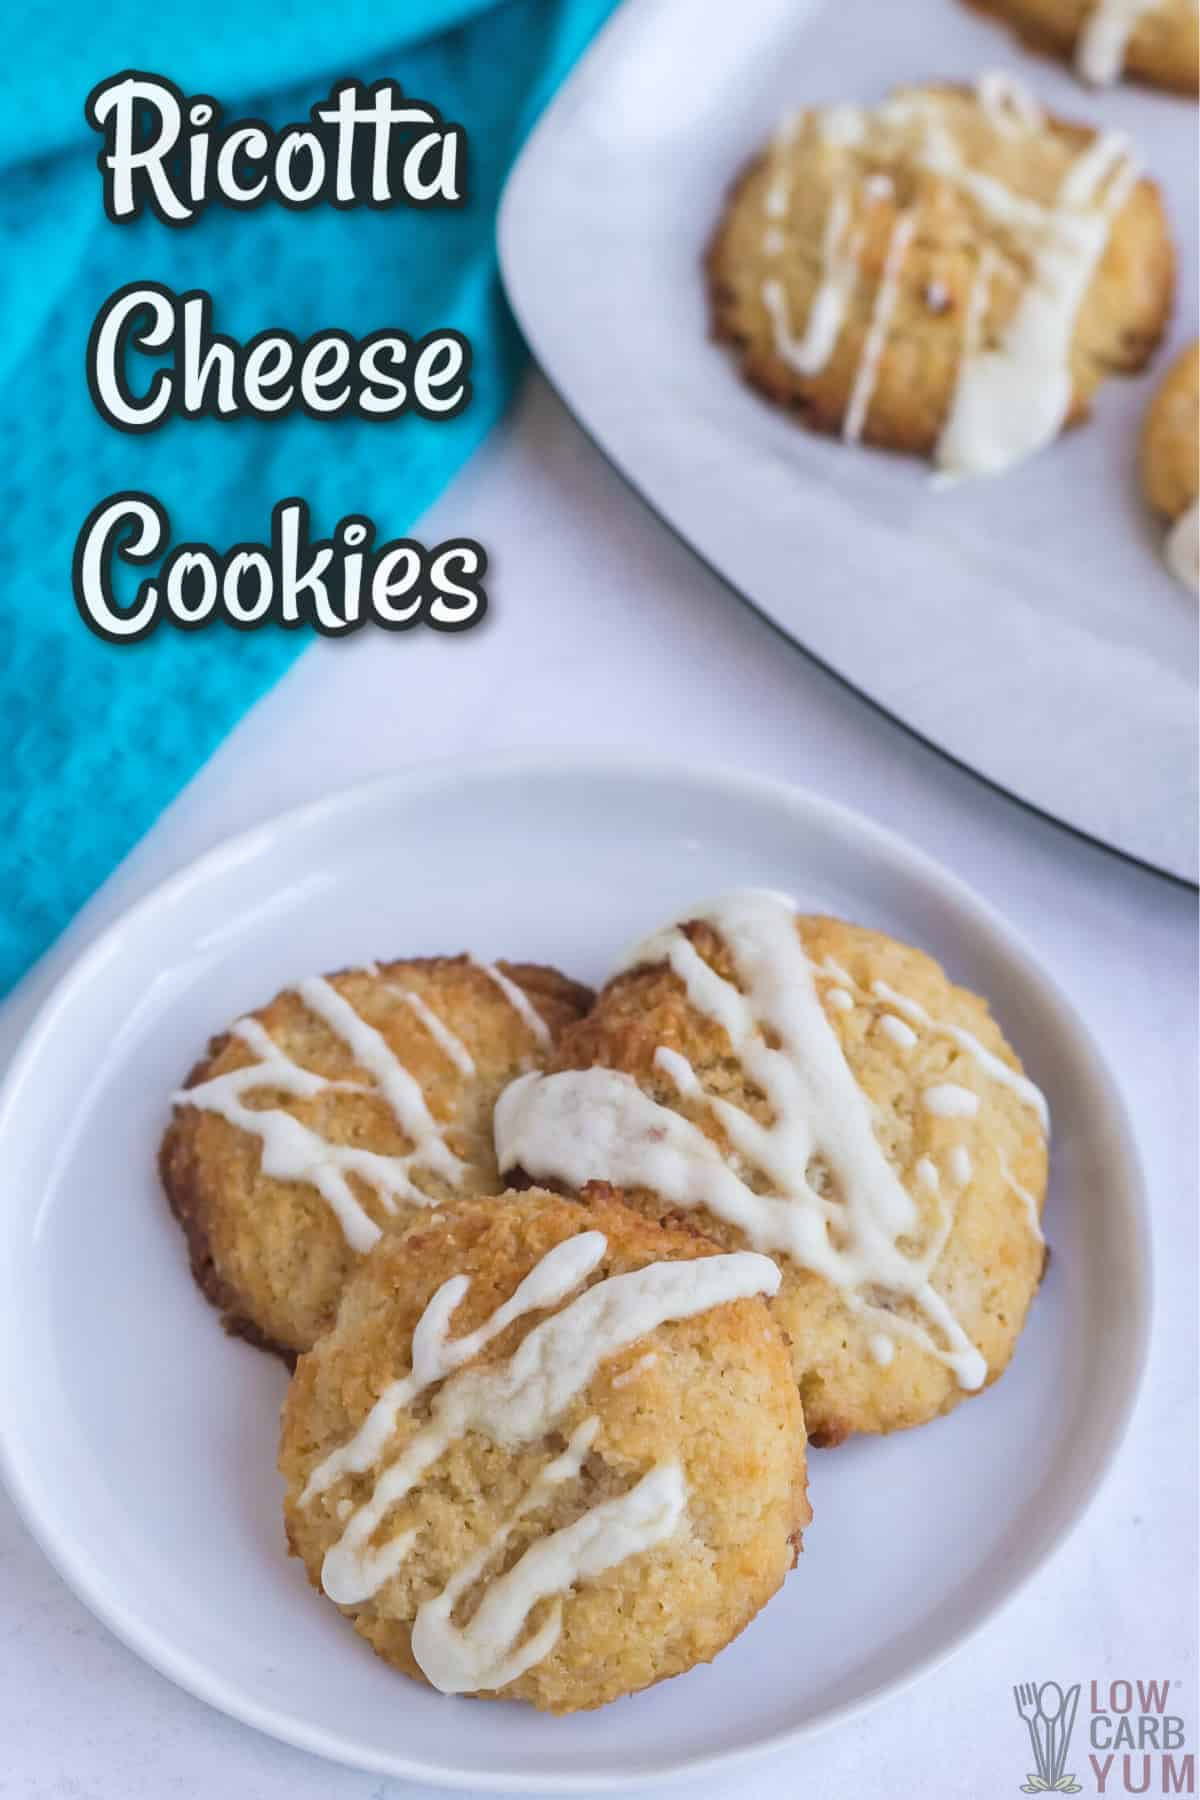 ricotta cheese cookies recipe cover image